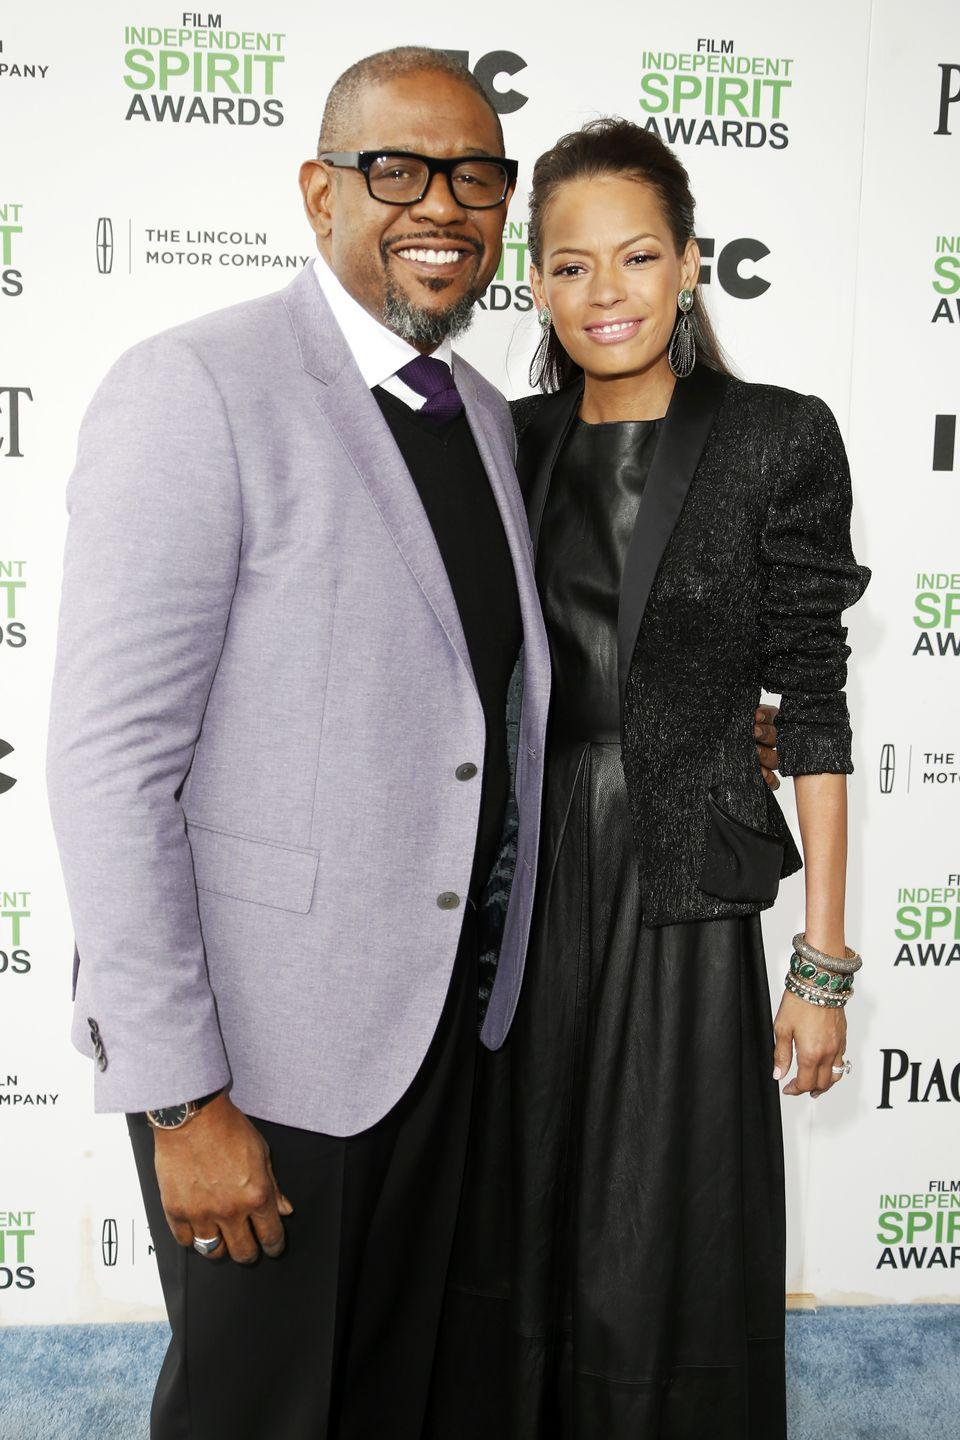 <p>Forest Whitaker and Keisha Nash Whitaker welcomed Sonnet in 1996, adding to their already-interesting list of kids' names: In addition to Sonnet, the couple has together a second daughter, True, as well as two children from previous relationships, Ocean and Autumn. After 22 years of marriage, the couple filed for divorce last month, citing irreconcilable differences.</p>